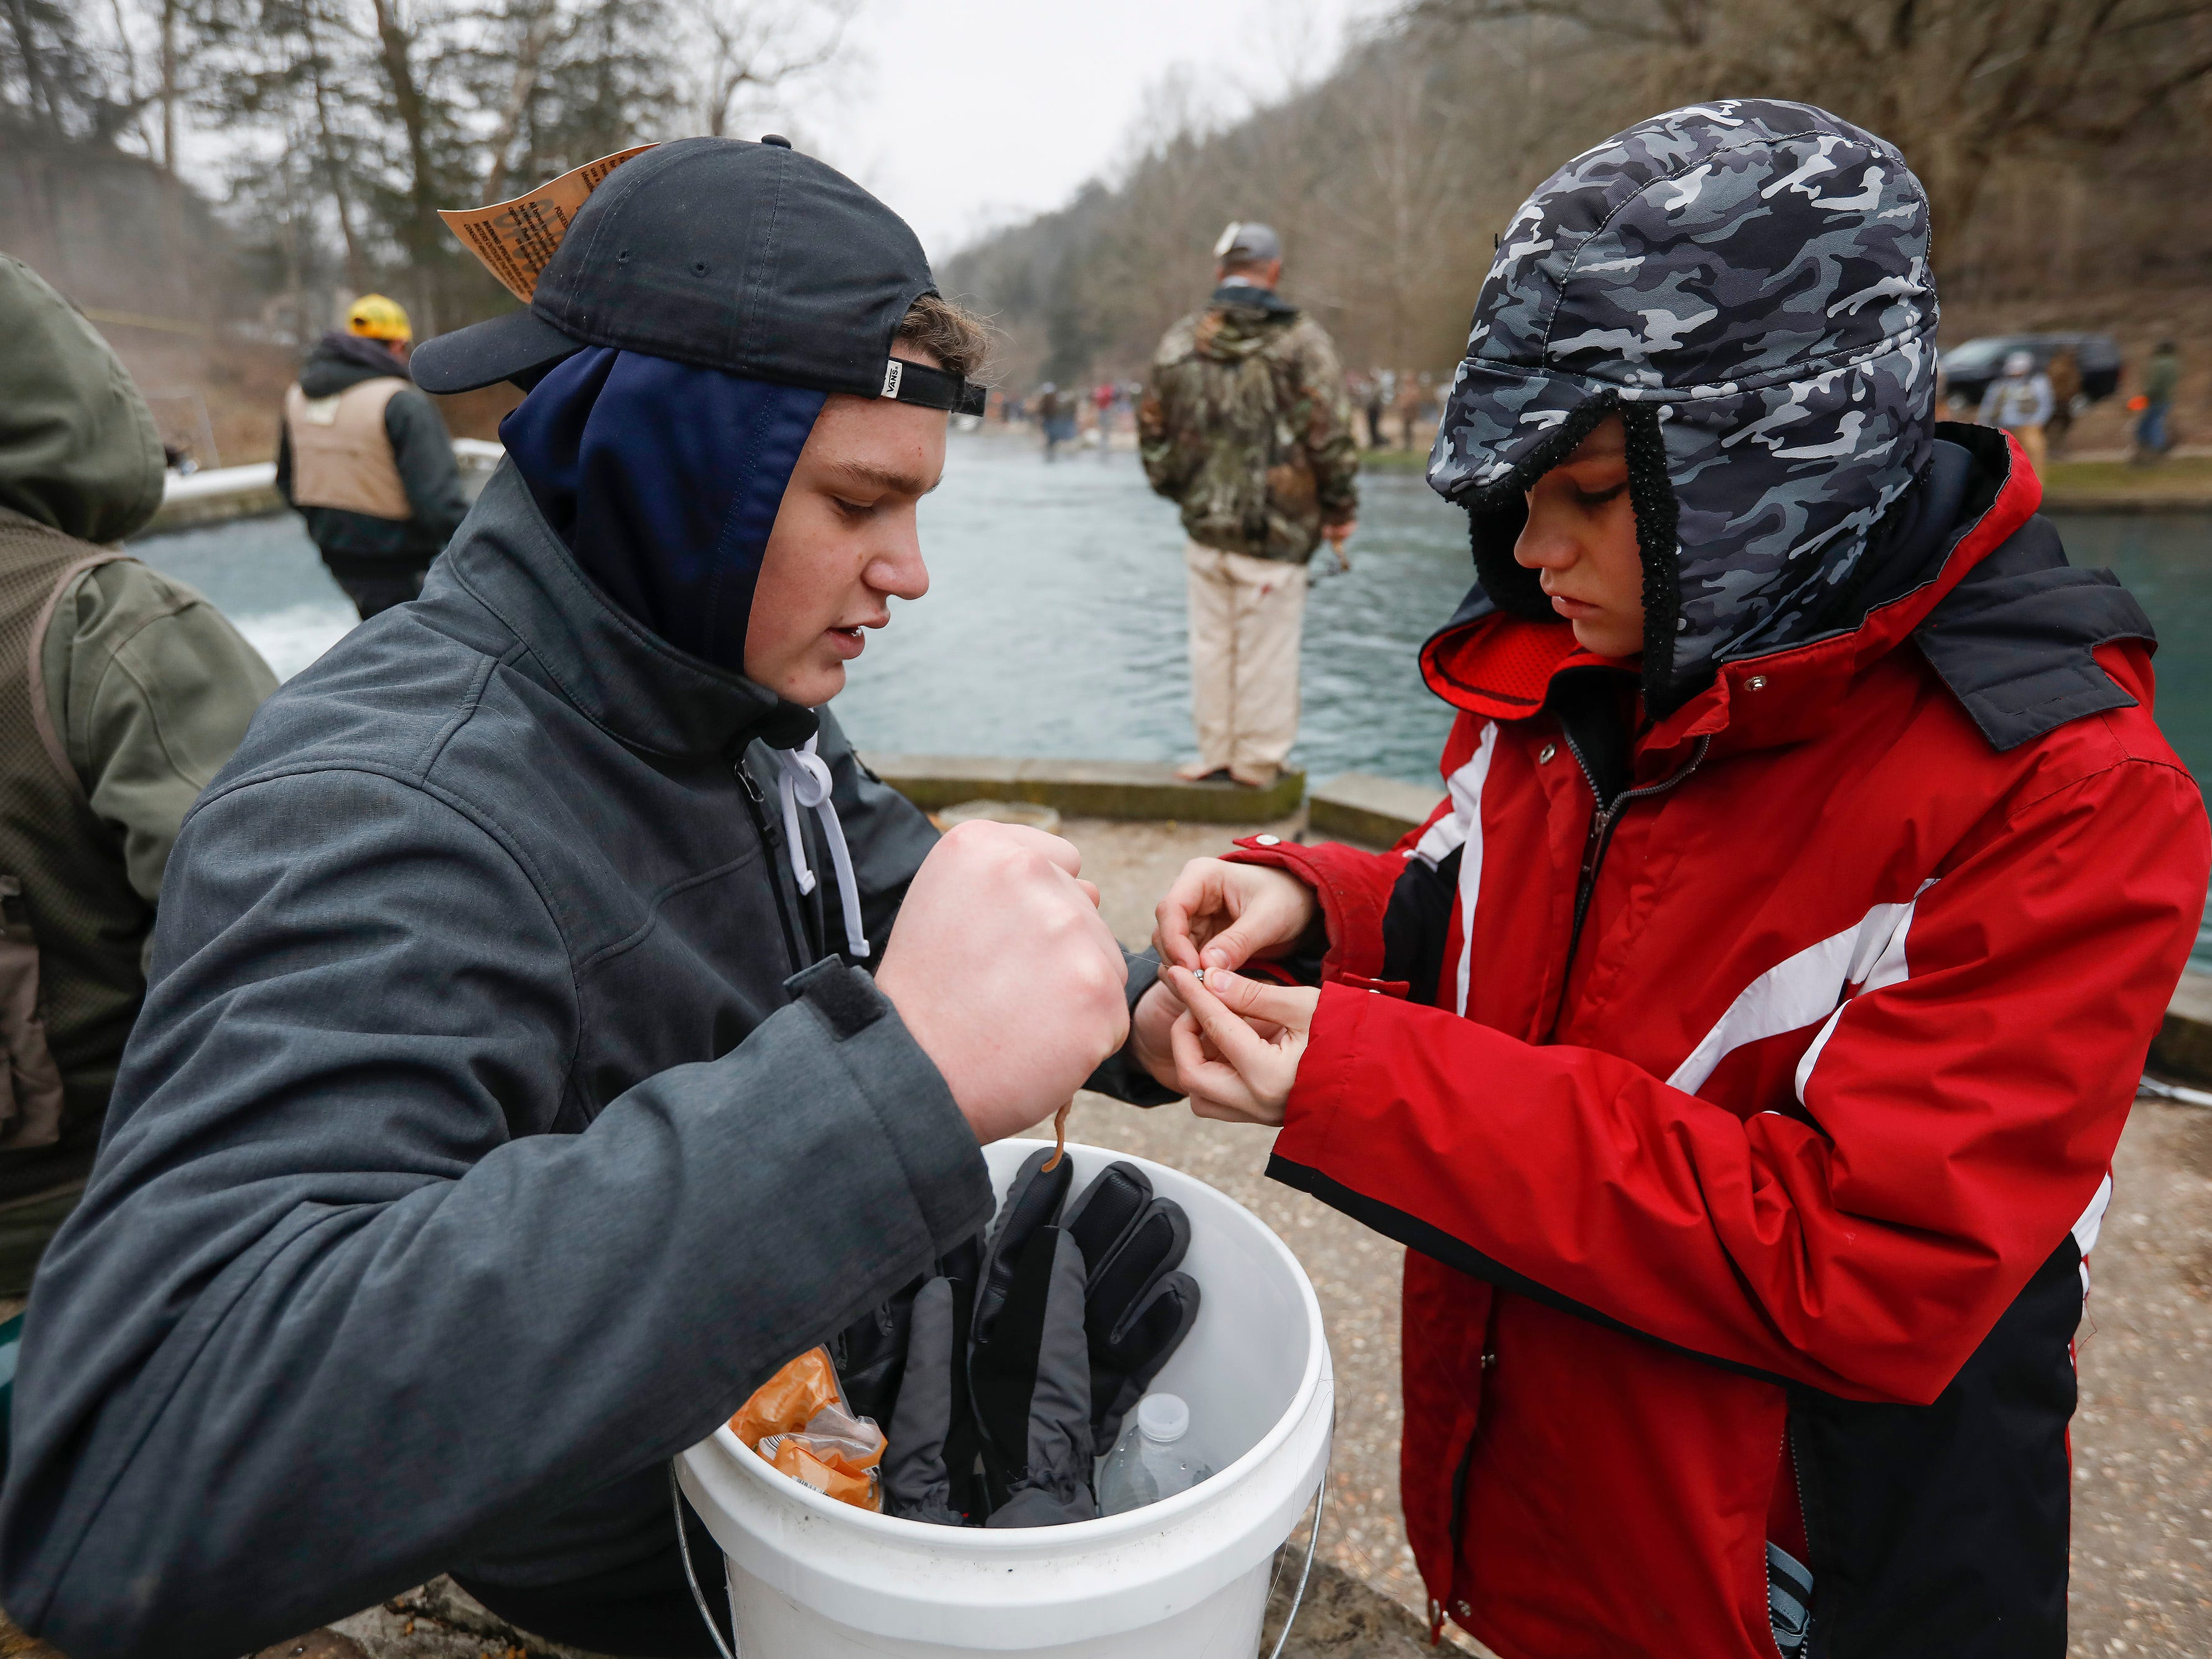 Kyler Miles, 17, left, and Tuff Schureman, 12, both of Rogers, Arkansas, attach a weight to a fishing line during opening day of trout season at Roaring River State Park on Friday, Mar. 1, 2019.